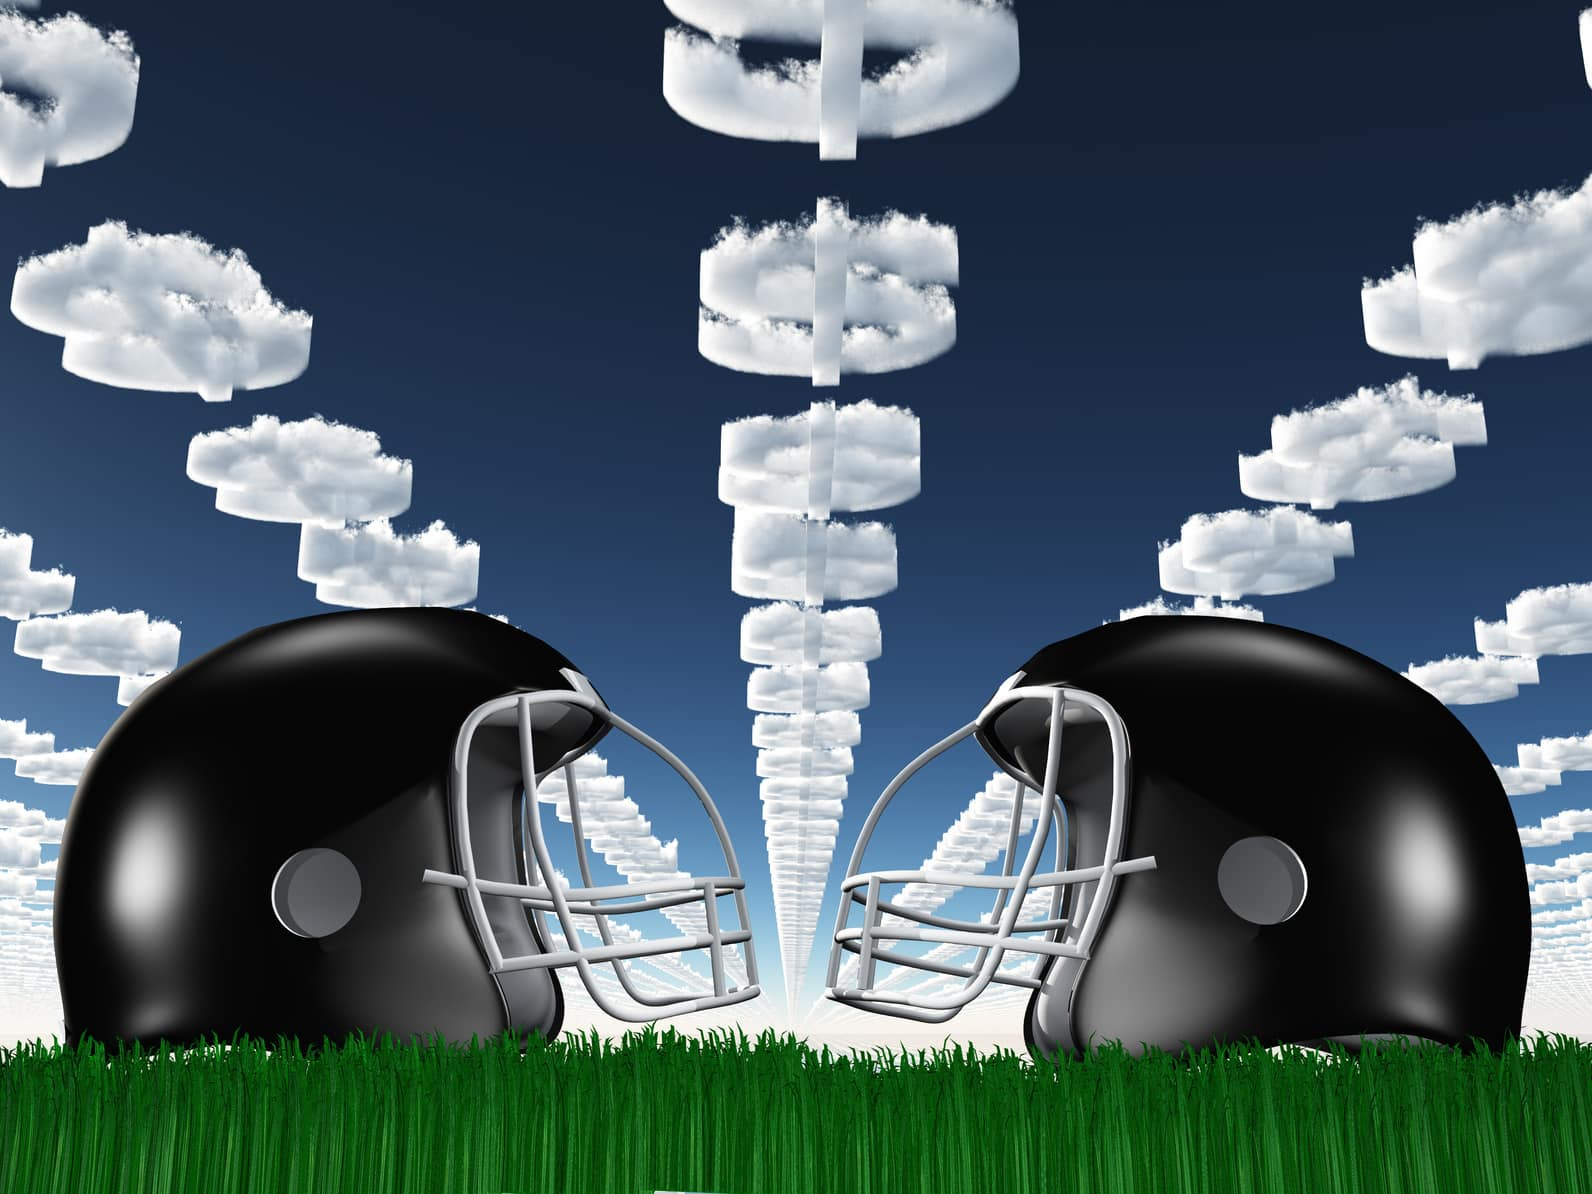 Football Helmet on Grass with Dollar `Symbol Clouds